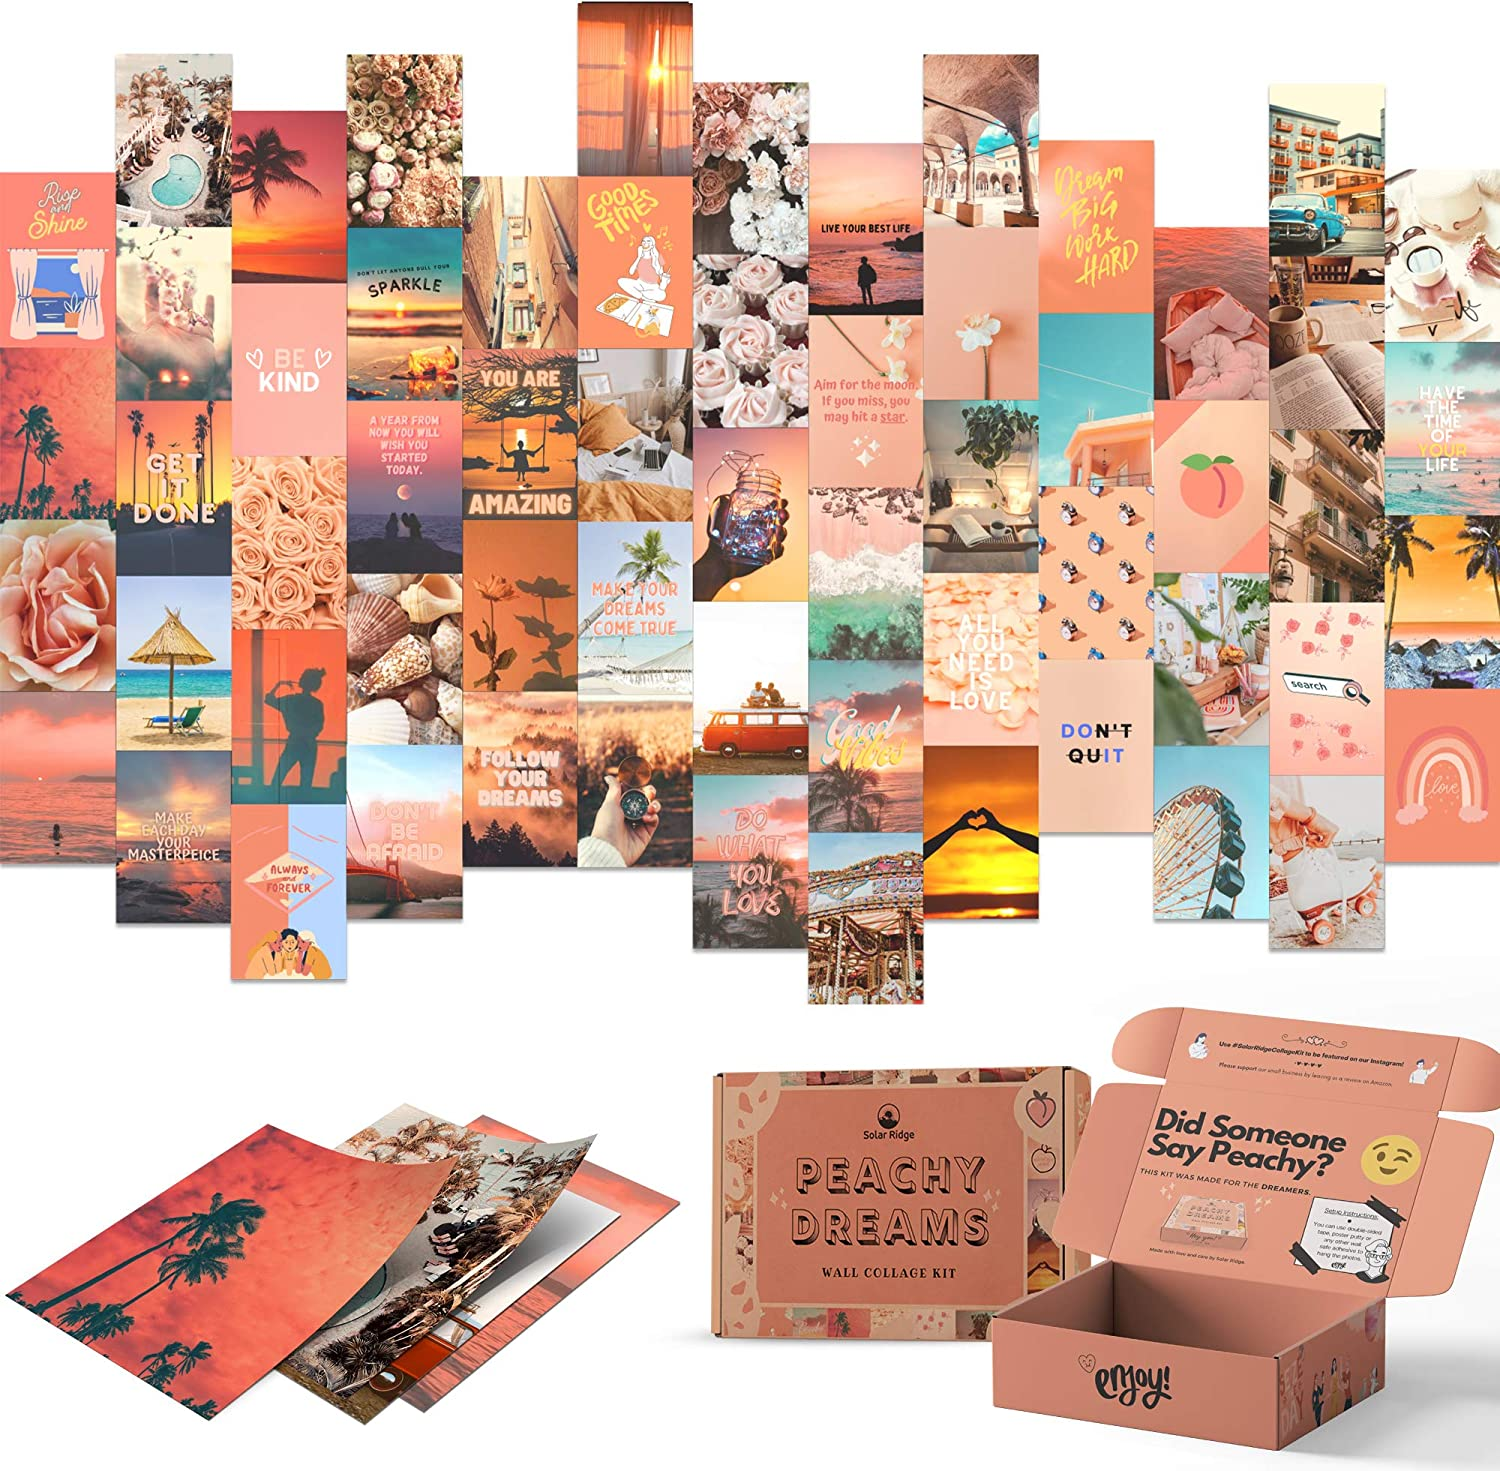 Peachy Dreams Wall Collage Kit Aesthetic Pictures 60 Set for Teen Girls Bedroom Dorm Room Decor Photo Collection 4x6 inch Orange Beach Boho Teens Wall Art Soft Pink Aesthetic Collage Posters